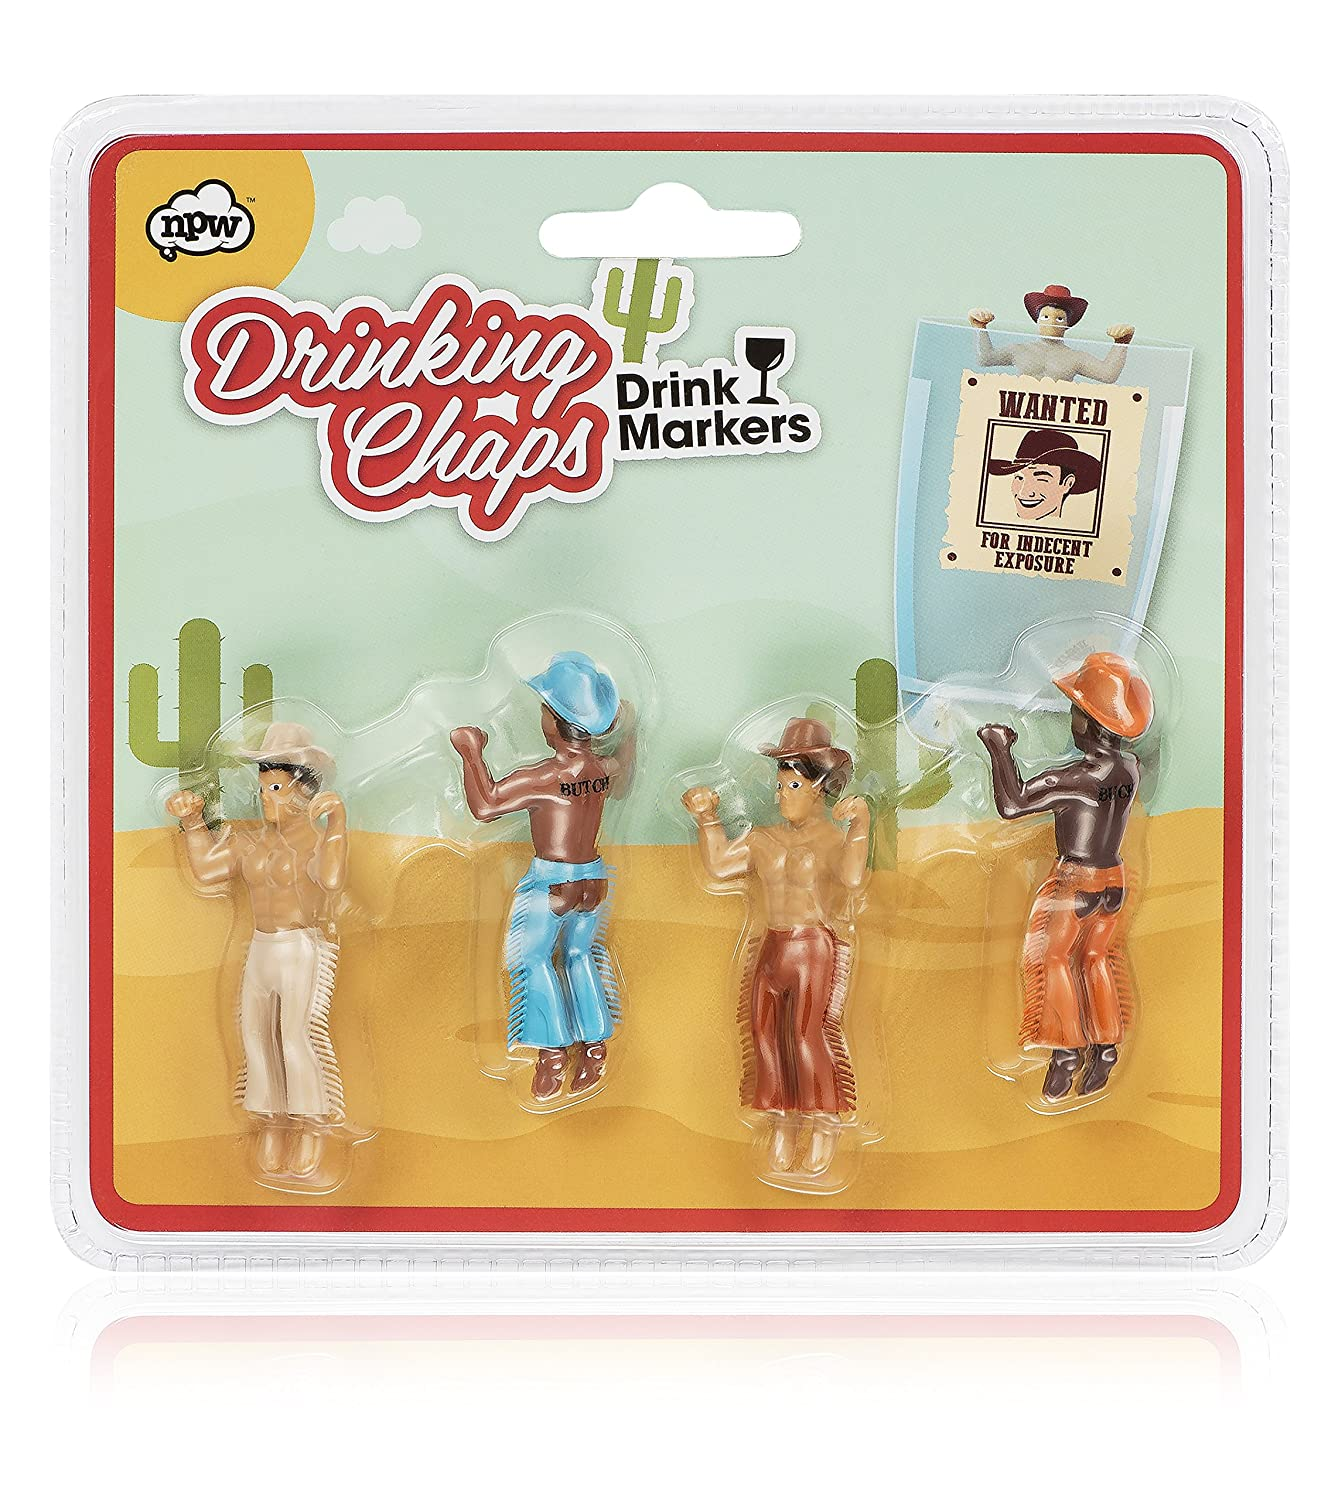 NPW Drinking Buddies Cocktail/Wine Glass Markers, 4-Count, Drinking Chaps Cowboy Buddies NP36046